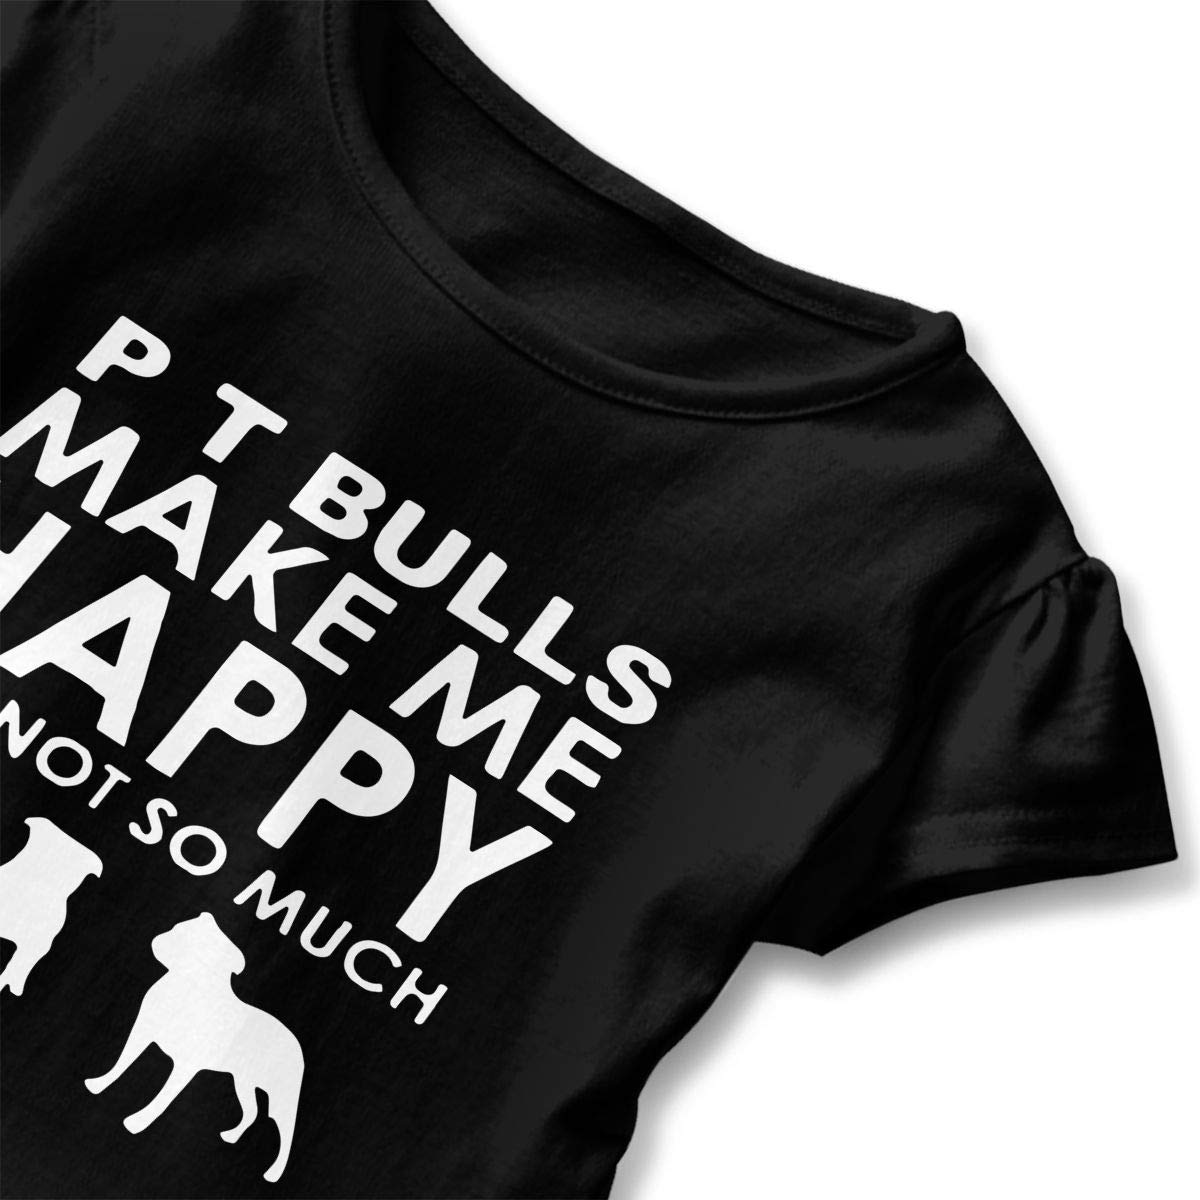 SHIRT1-KIDS Pit Bulls Make Me Happy You Toddler//Infant Girls Short Sleeve Ruffles Shirt Tee Jersey for 2-6T